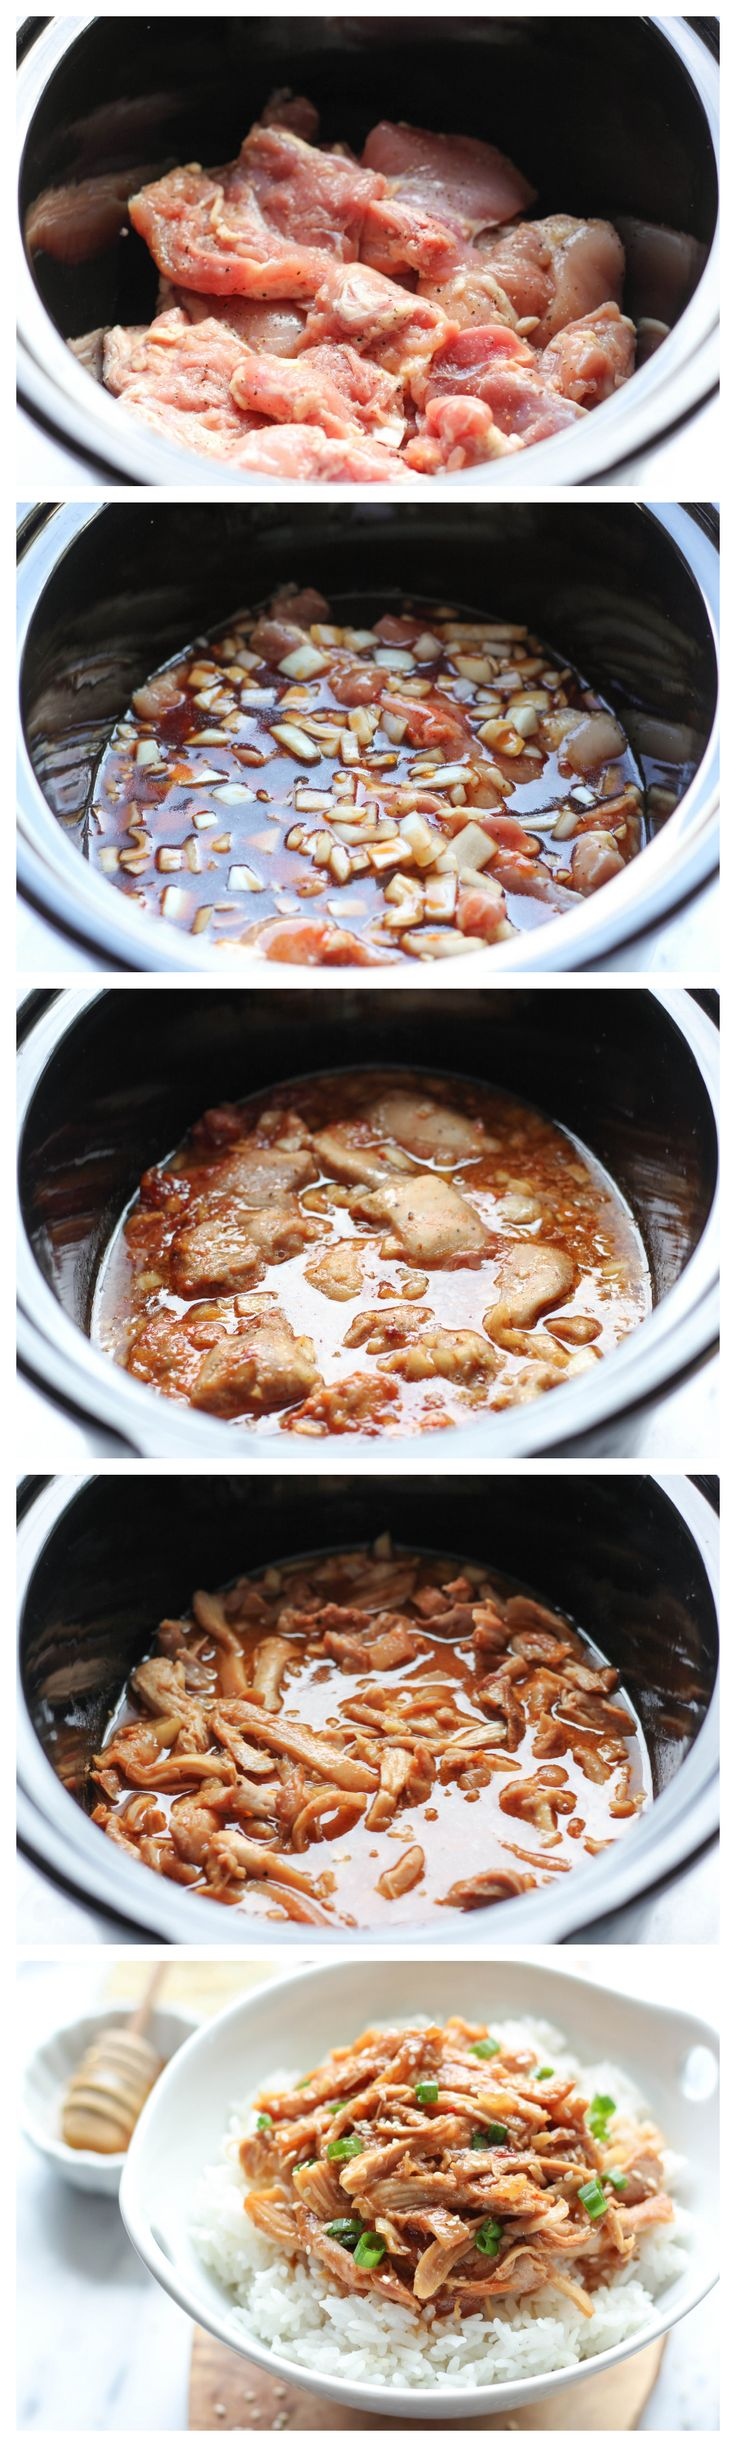 Slow Cooker Honey Sesame Chicken - Simply throw everything in the crockpot for a quick and easy, no-fuss, family-friendly meal!